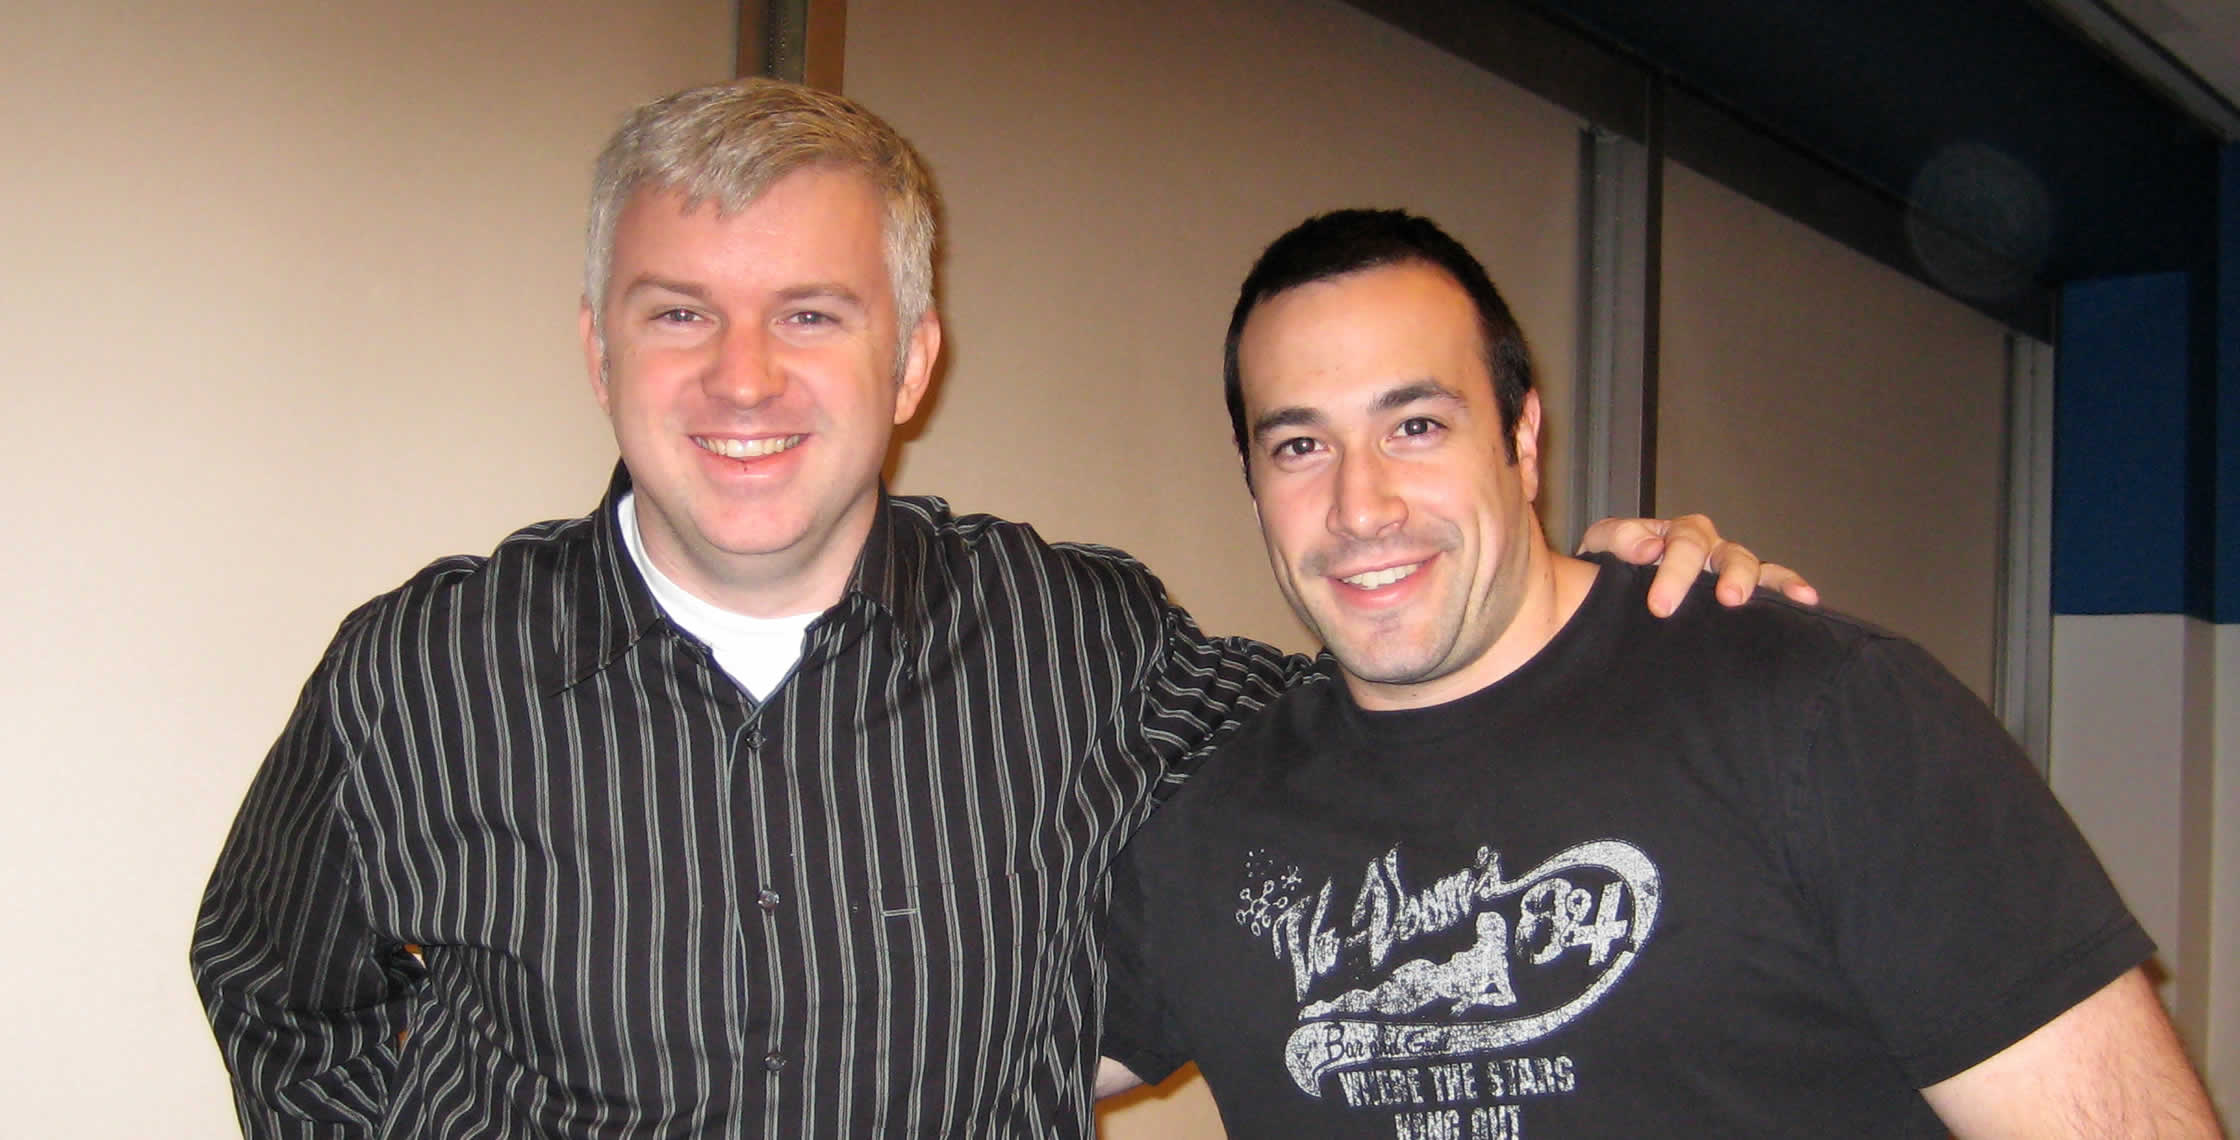 Ben Nadel at the New York ColdFusion User Group (Feb. 2008) with: Jack Welde